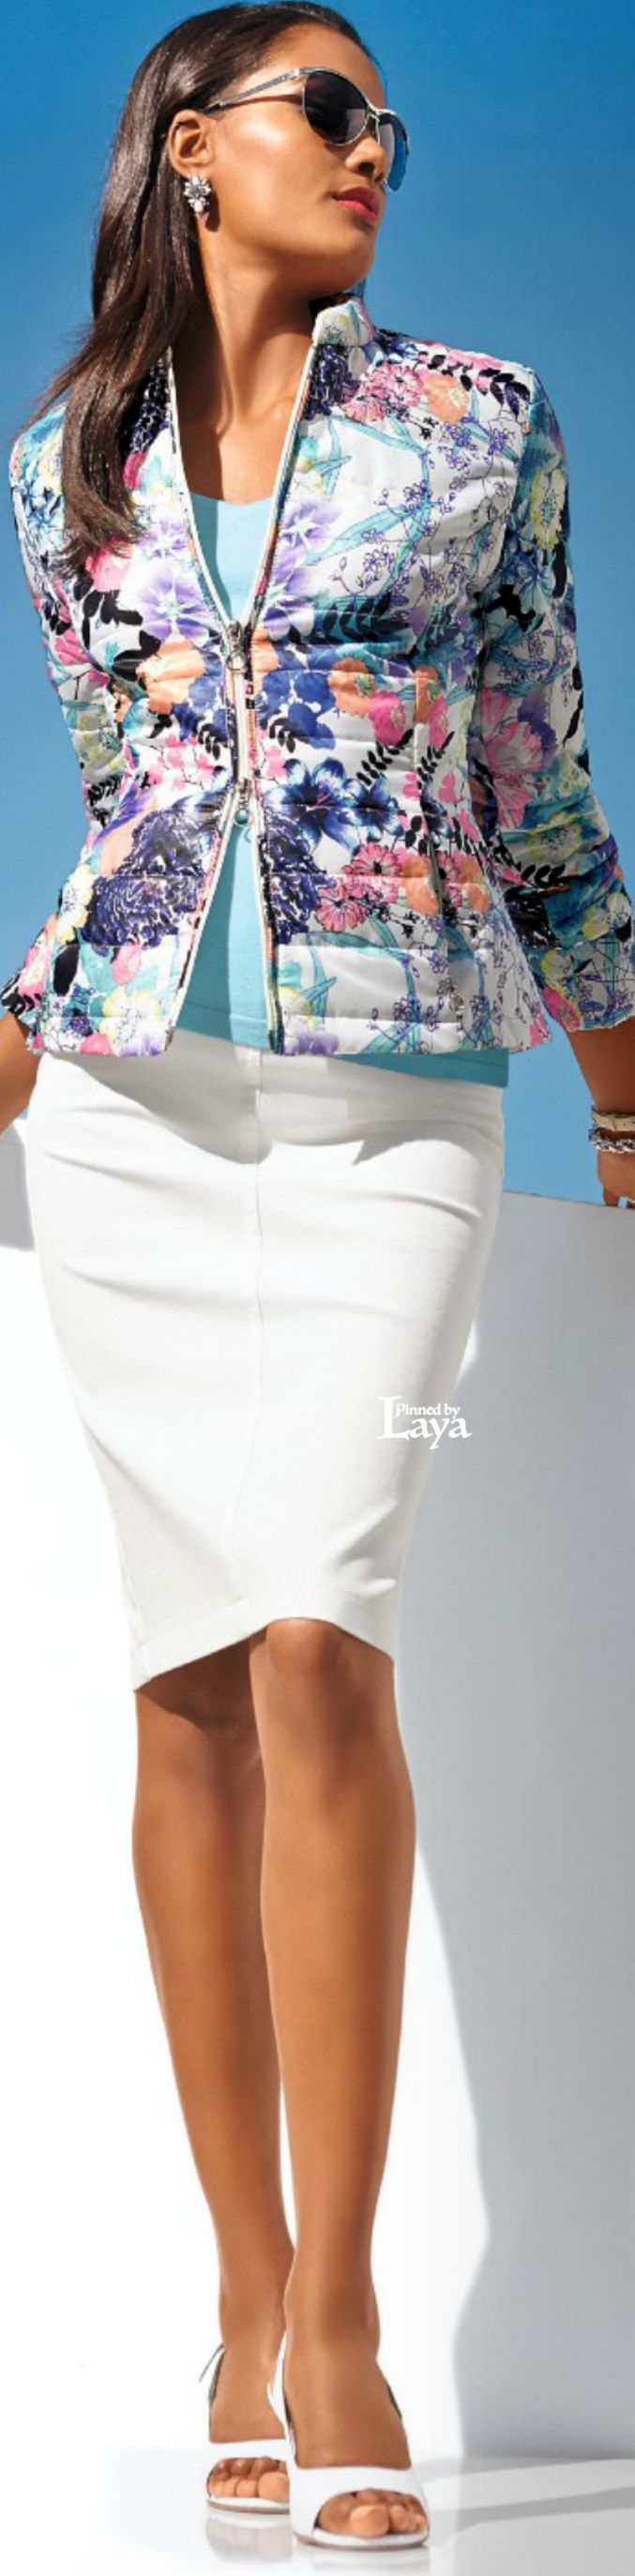 ♔LAYA♔MADELEINE♔ women fashion outfit clothing style apparel @roressclothes closet ideas